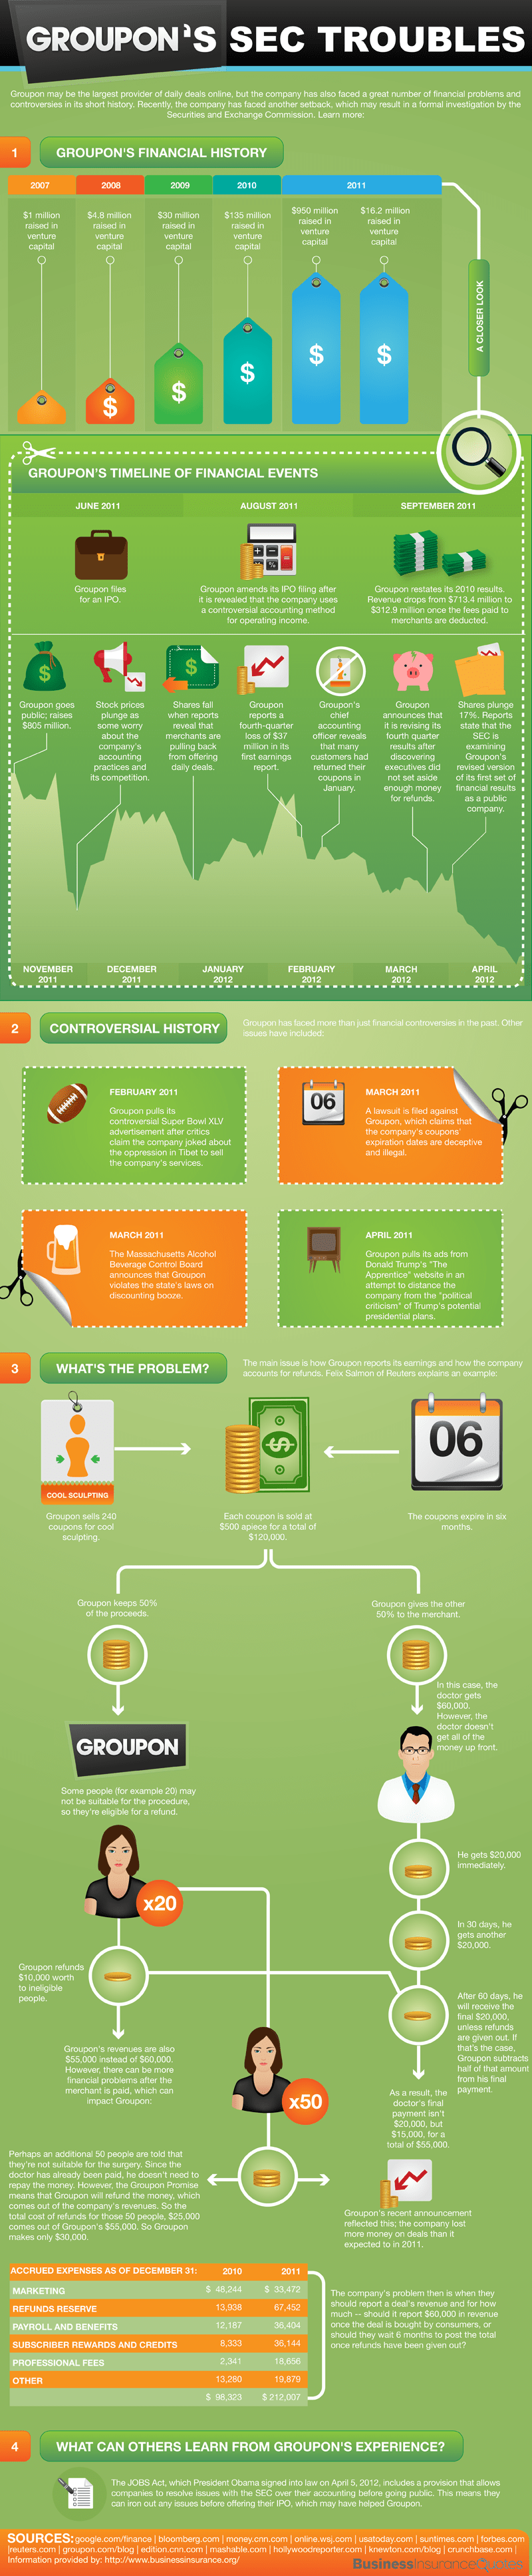 Groupon SEC Troubles Infographic